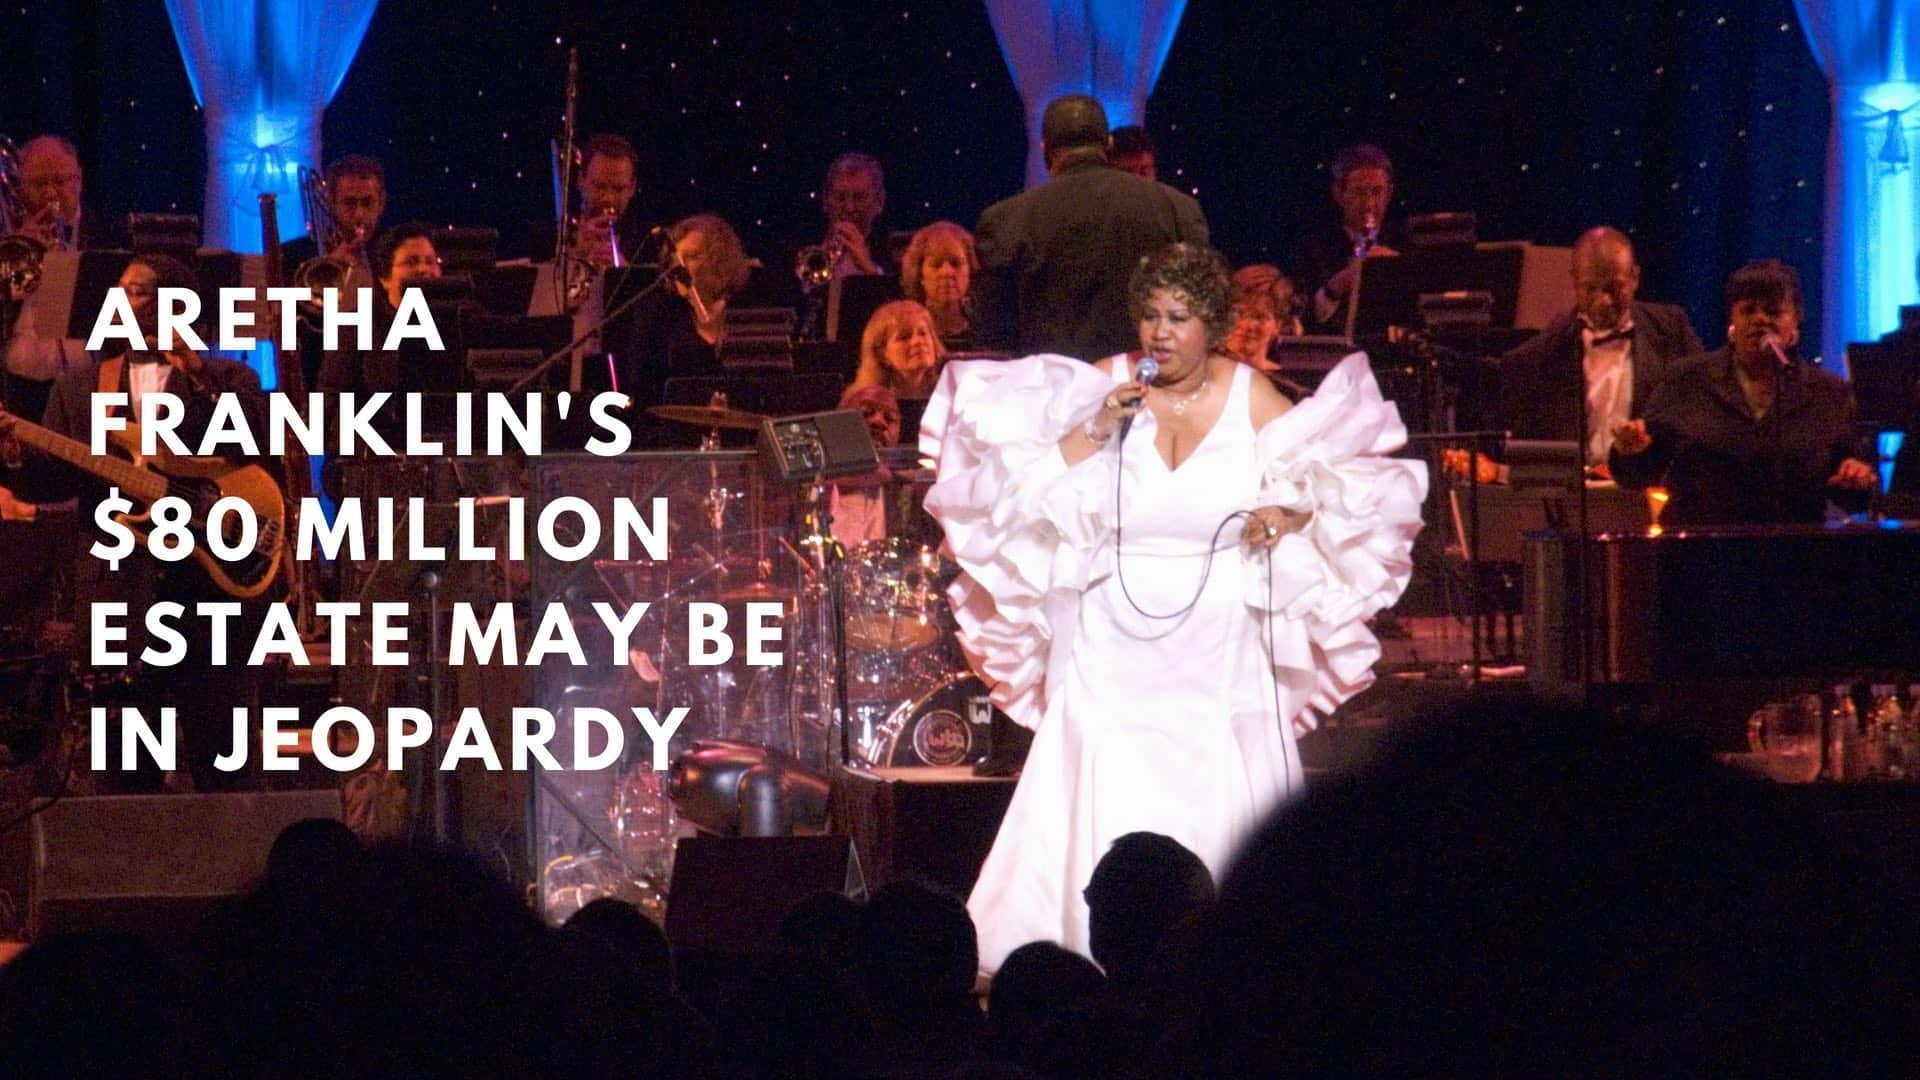 [object object] - ArethaF - Aretha Franklin's 80 Million Dollar Estate May Be in Jeopardy